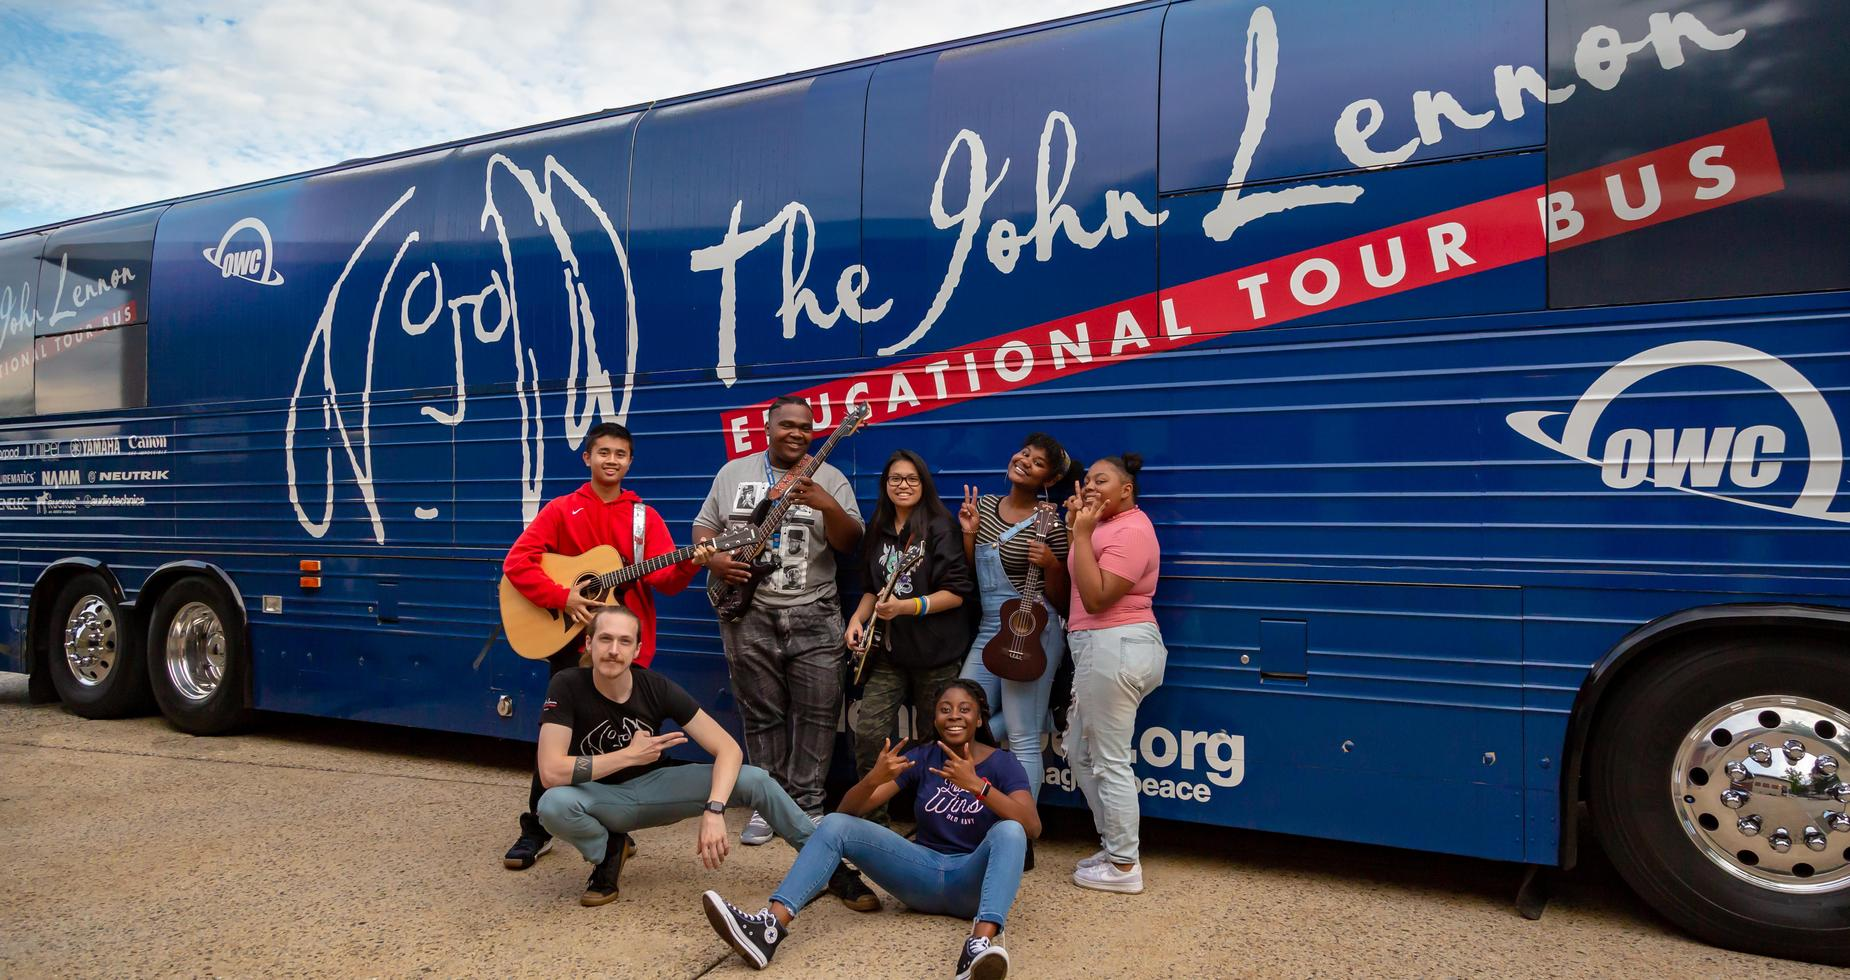 Students at the John Lennon Experience